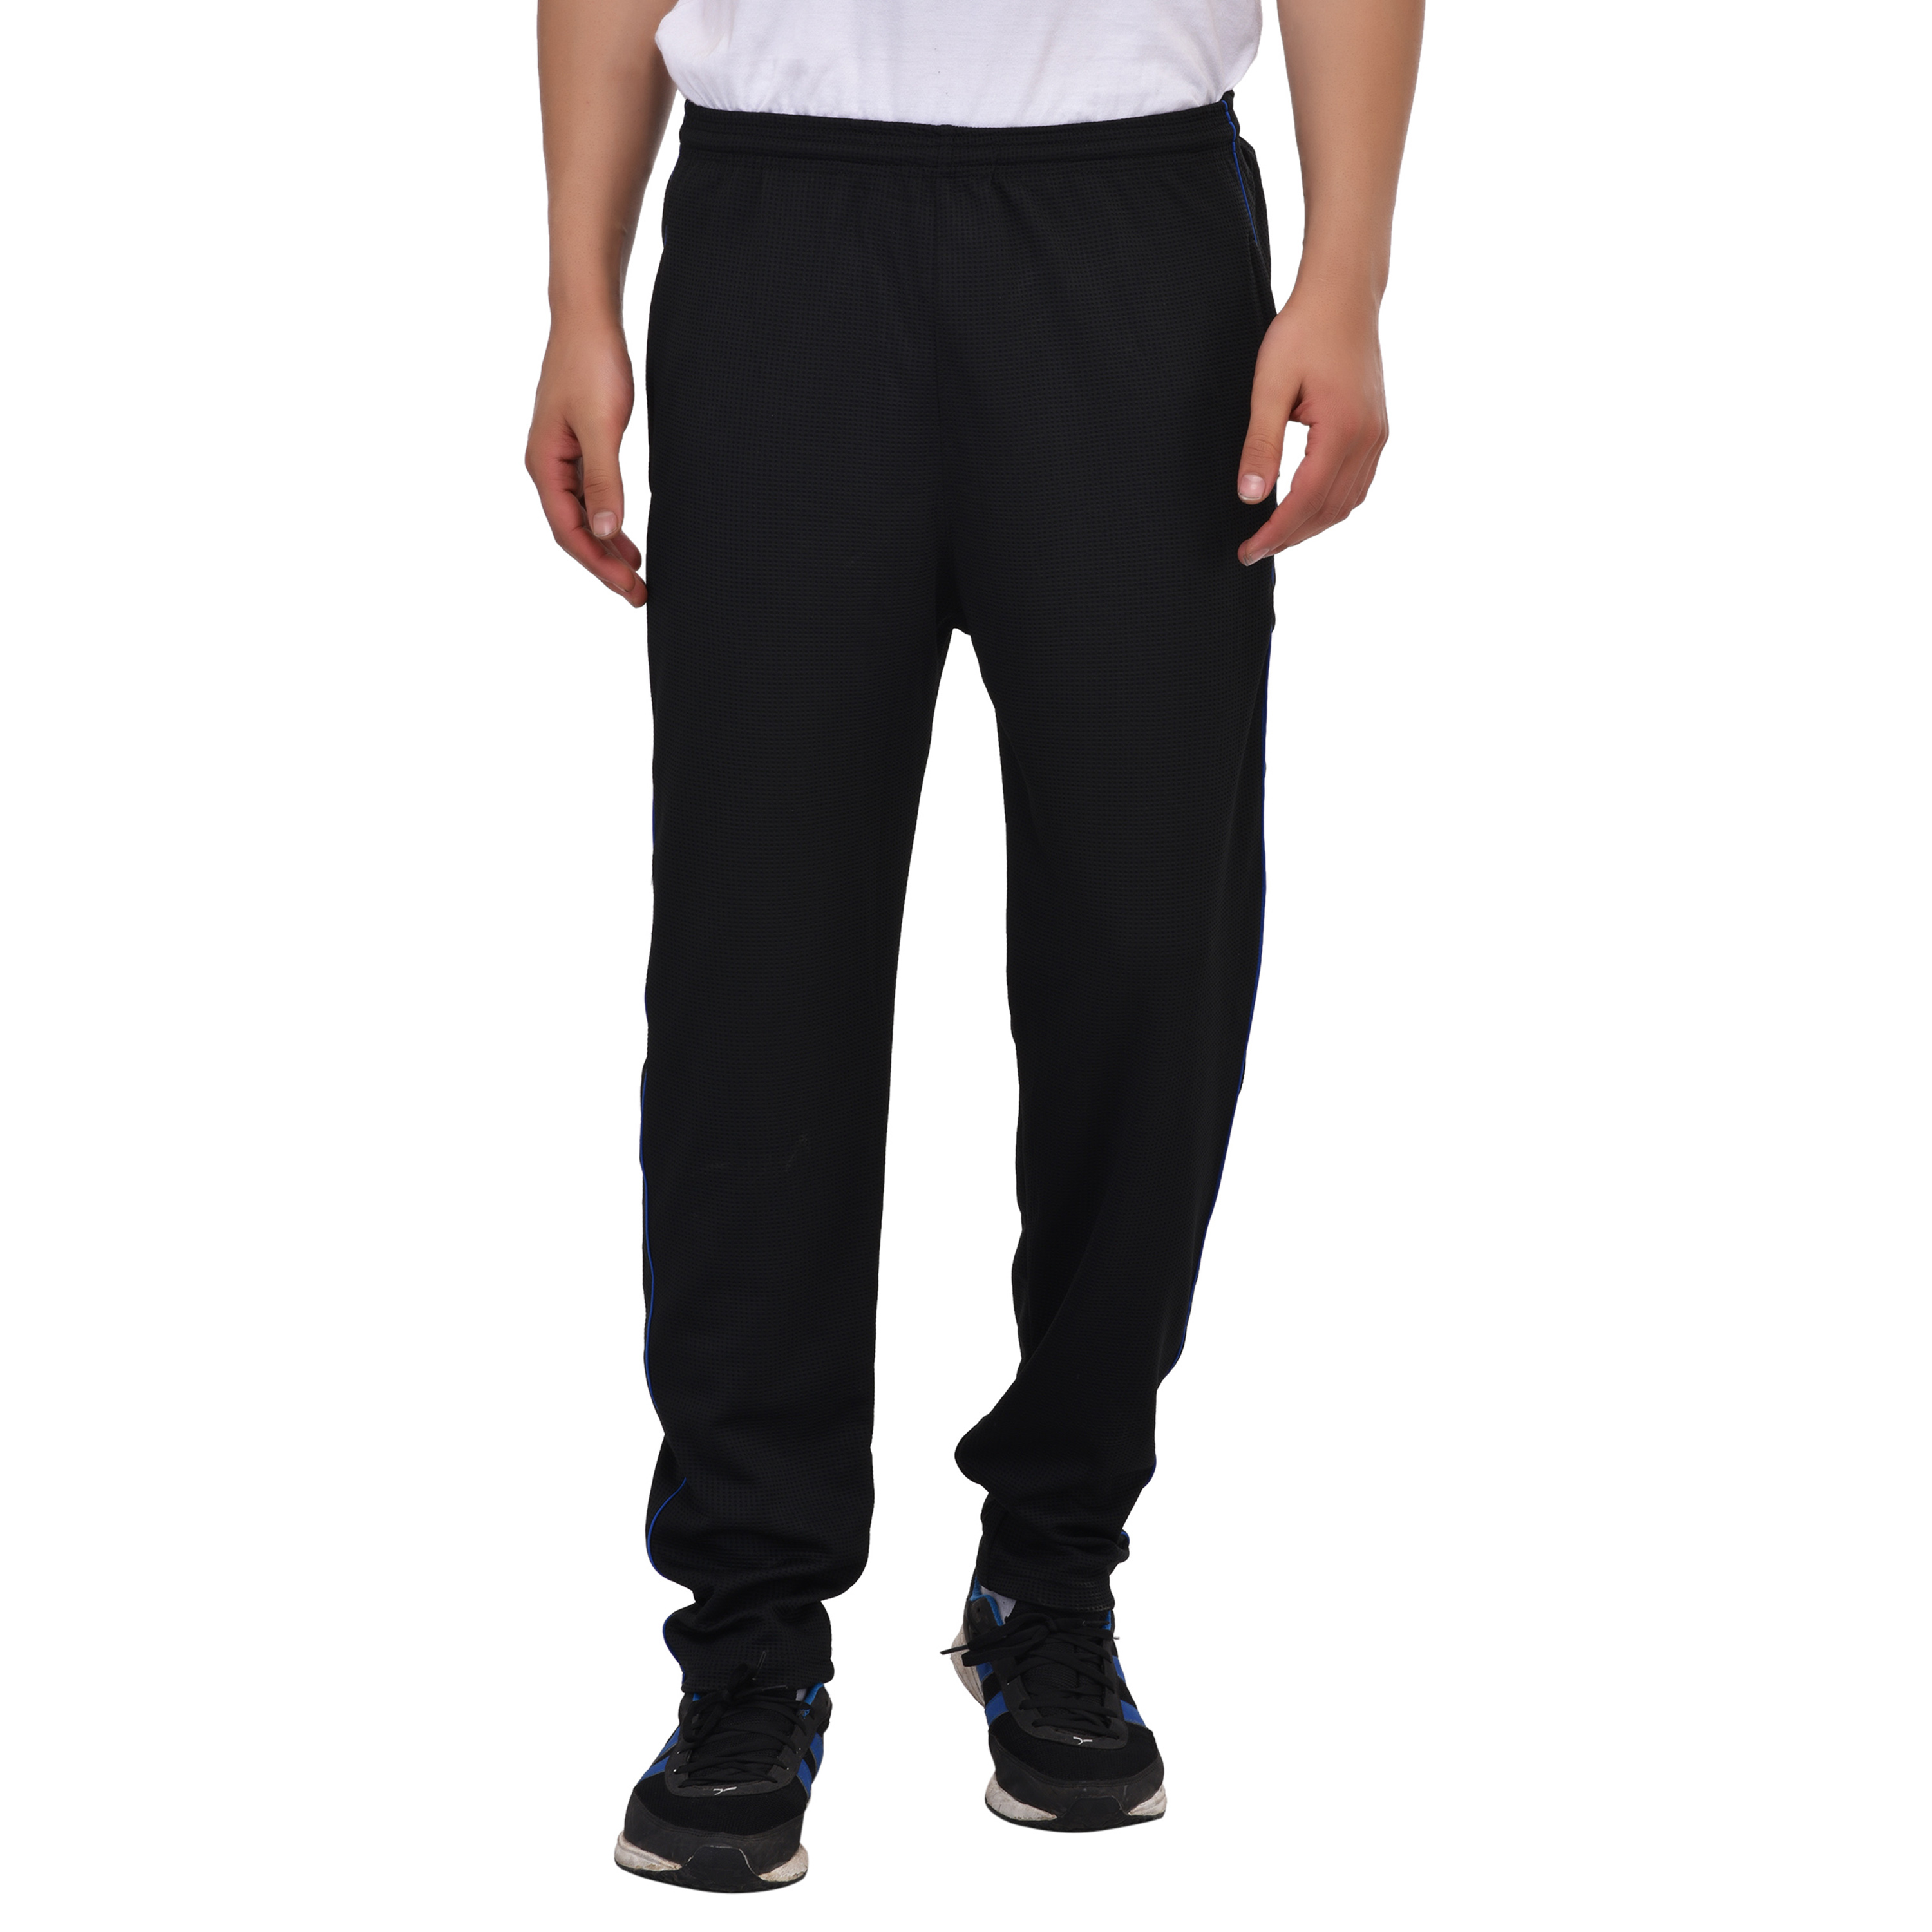 Track Pants Manufacturers, Wholesale Suppliers